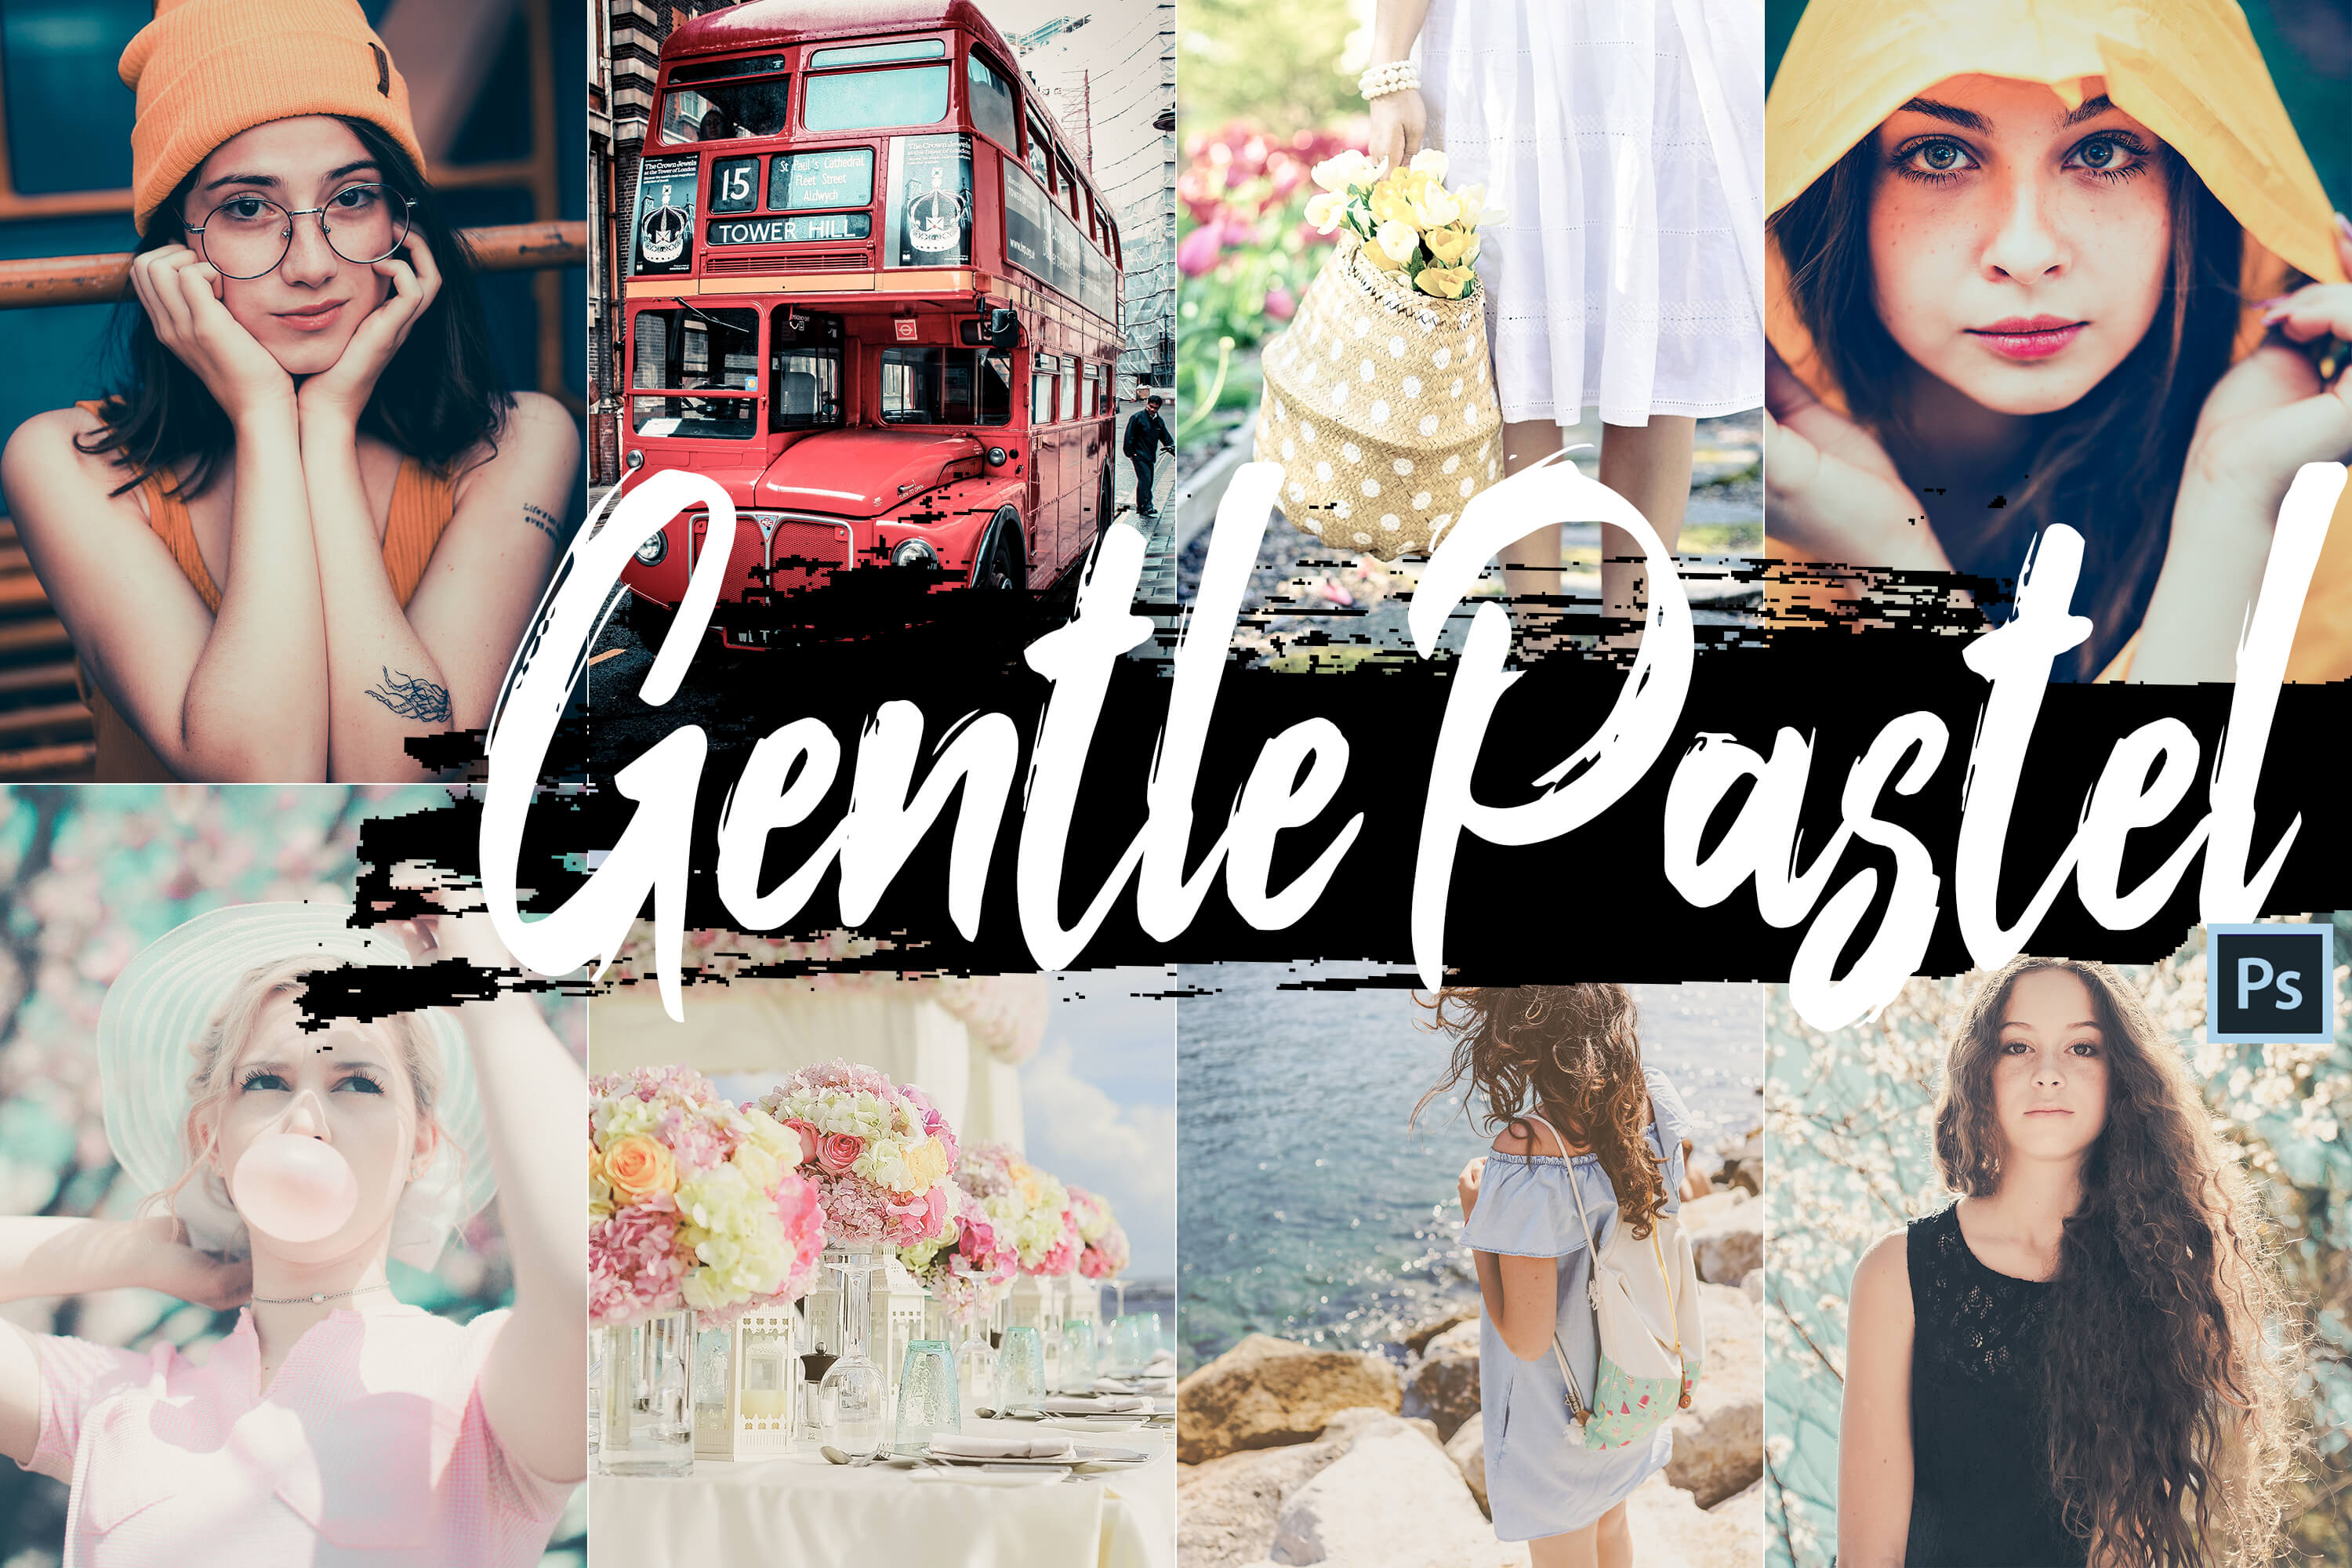 Gentle Pastel PS Actions & LUTs Bundle